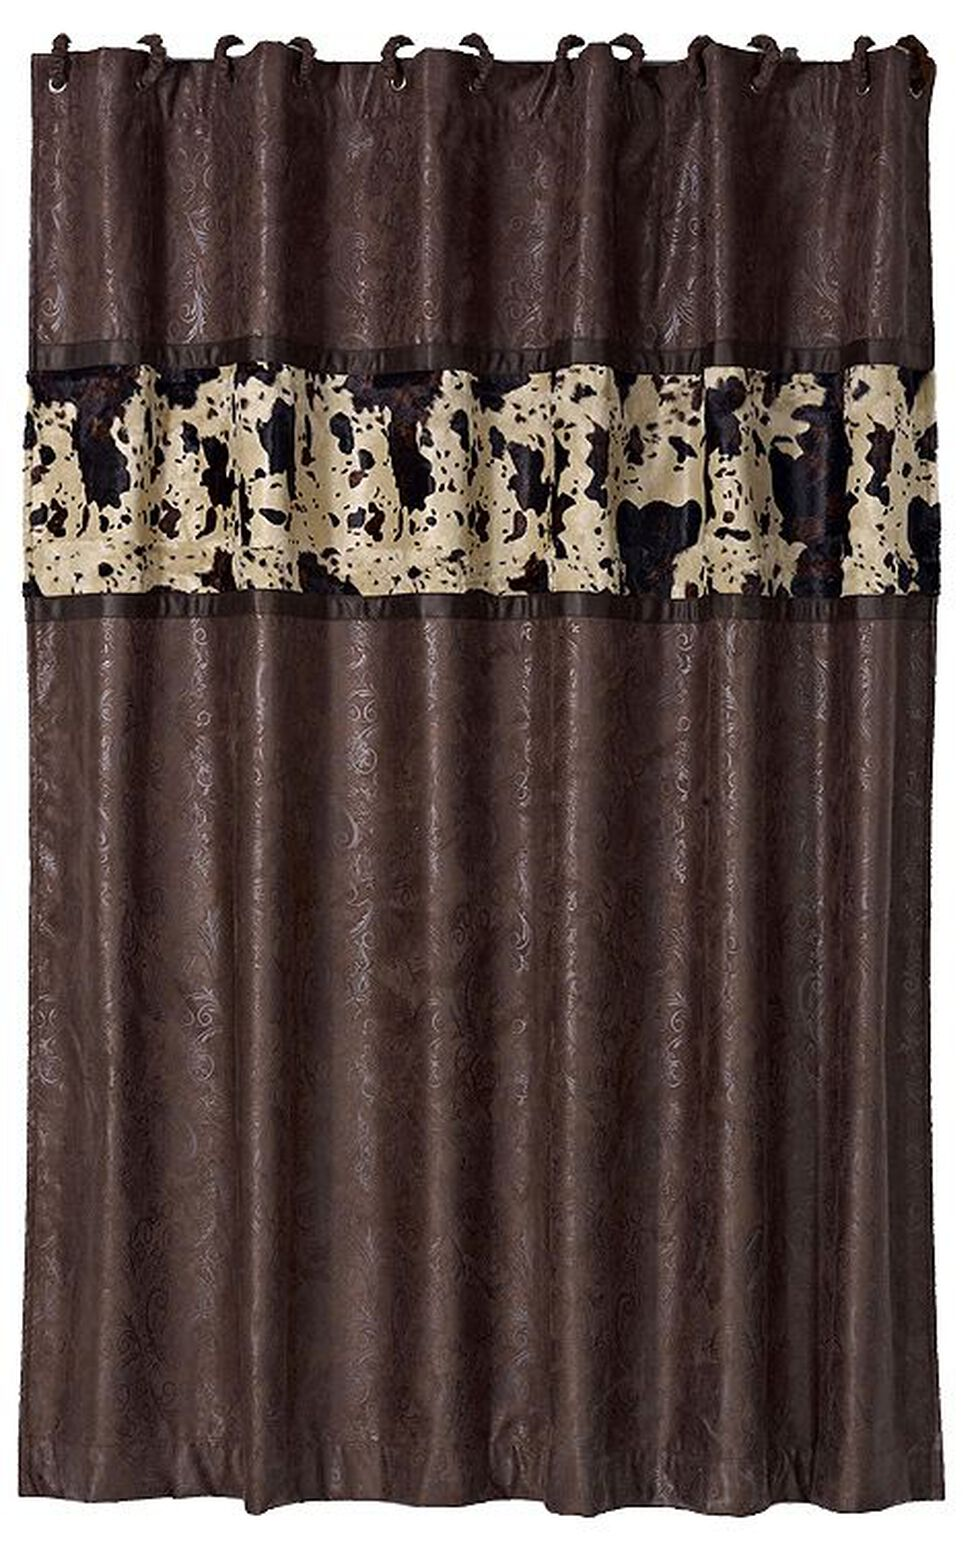 HiEnd Accents Caldwell Cowhide Shower Curtain, Multi, hi-res